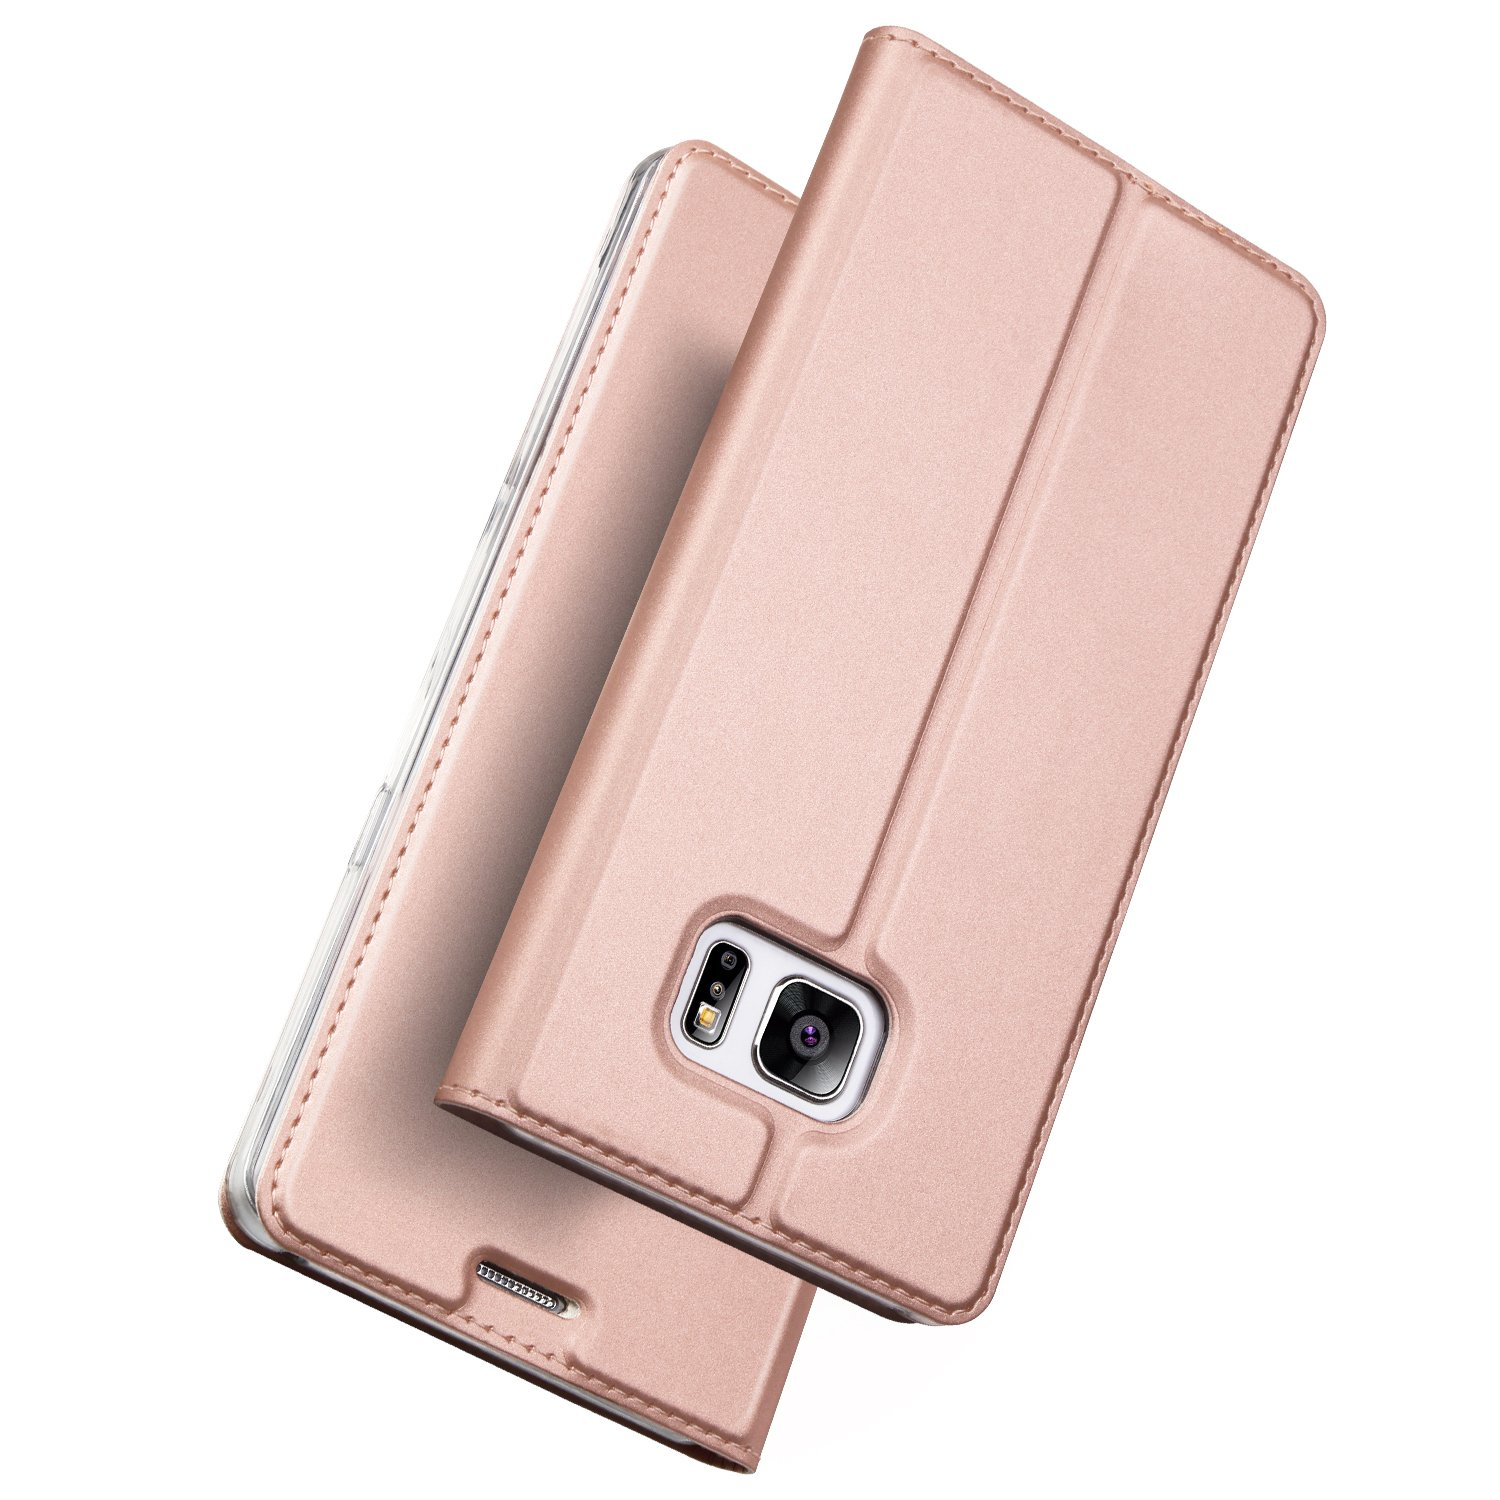 Case for Samsung Galaxy S7,Leather PU Wallet Folio Flip Protective Cover with Card Holder Kickstand for S7 Edge